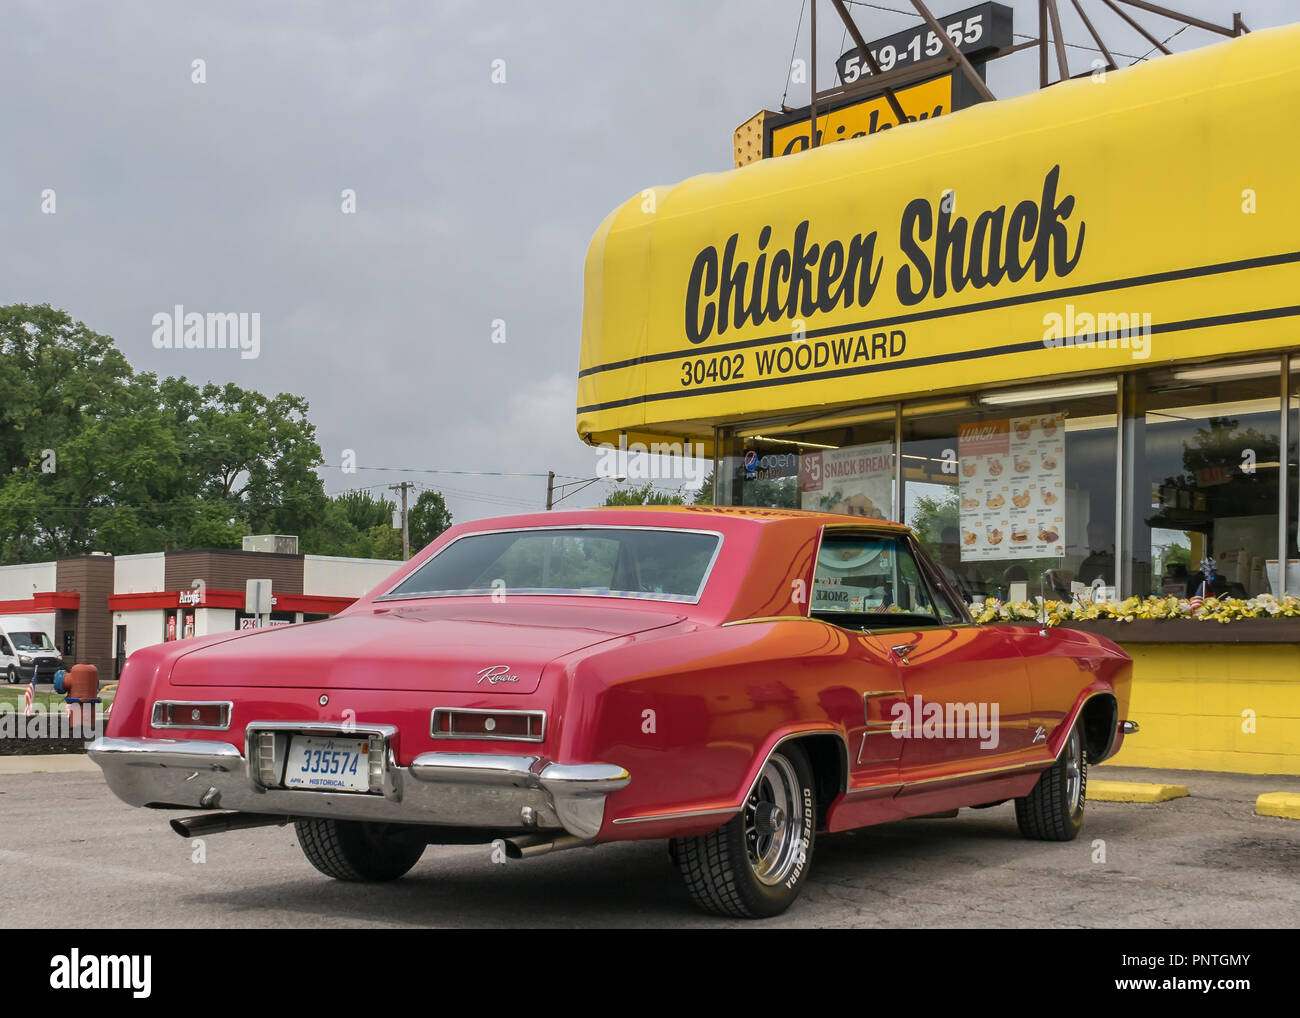 Red Buick Stock Photos Images Alamy 1950s And 1960s Riviera Royal Oak Mi Usa August 17 2018 A 1963